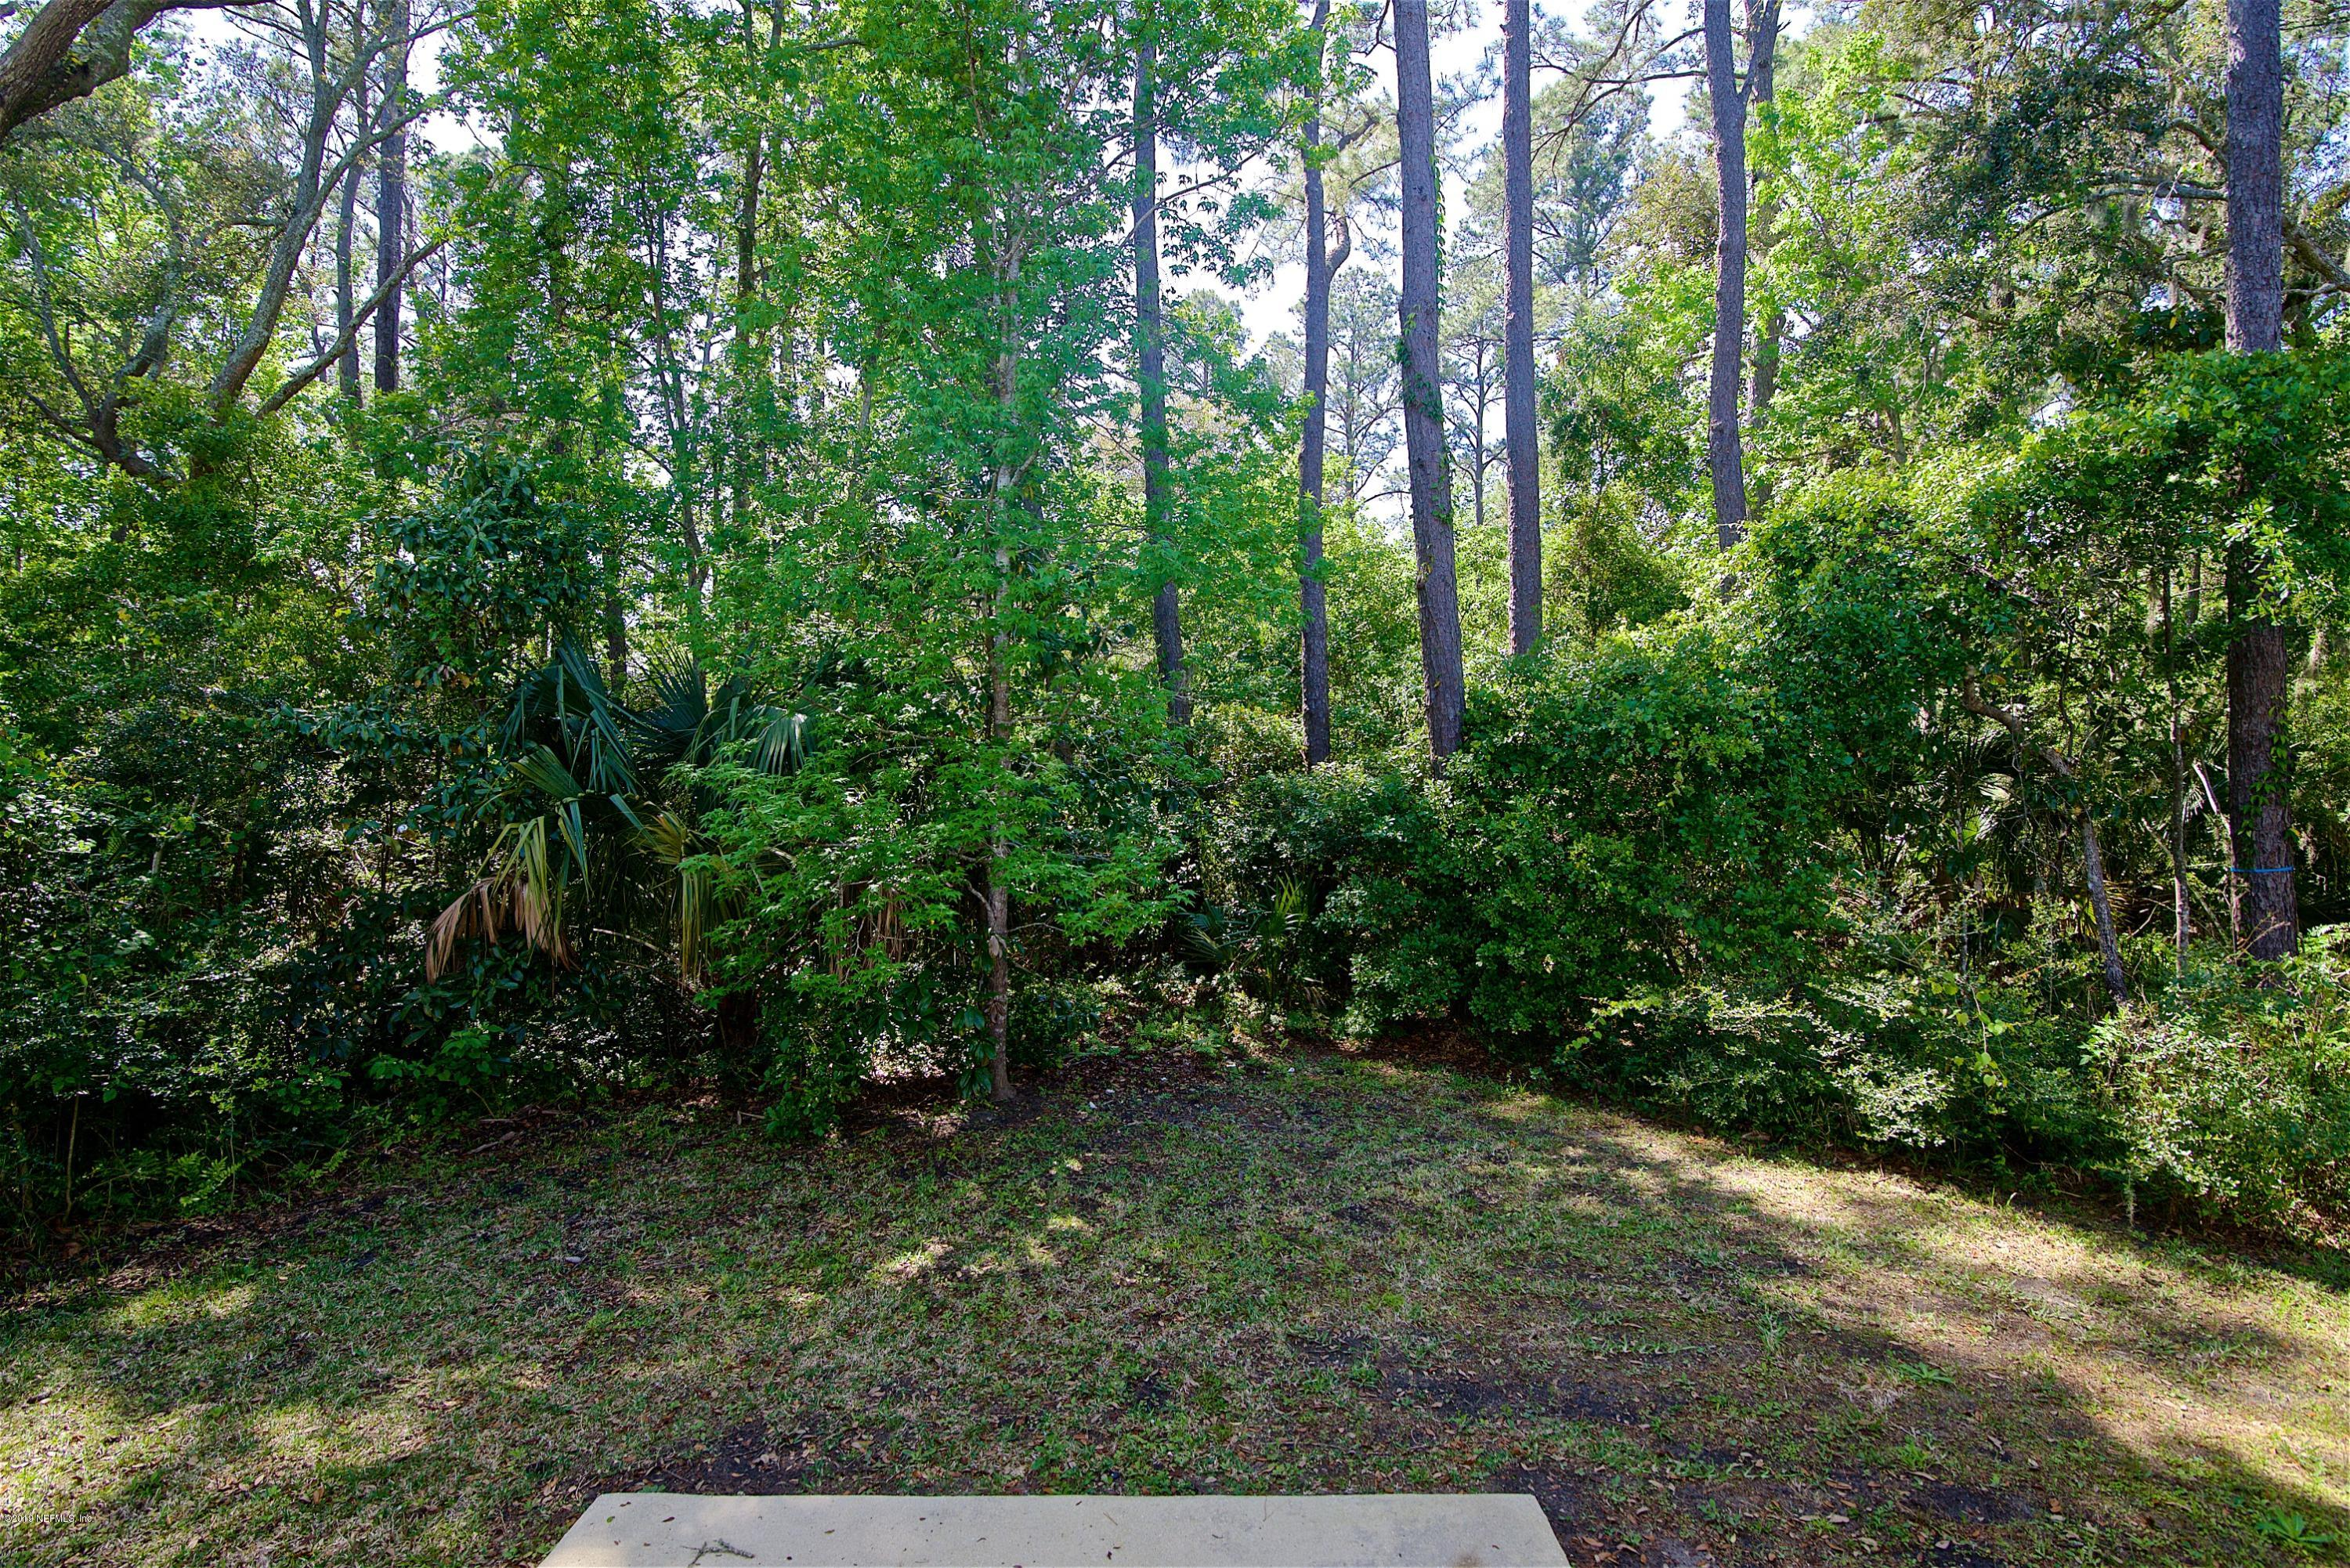 880 PARADISE, ATLANTIC BEACH, FLORIDA 32233, 4 Bedrooms Bedrooms, ,3 BathroomsBathrooms,Residential - single family,For sale,PARADISE,989191